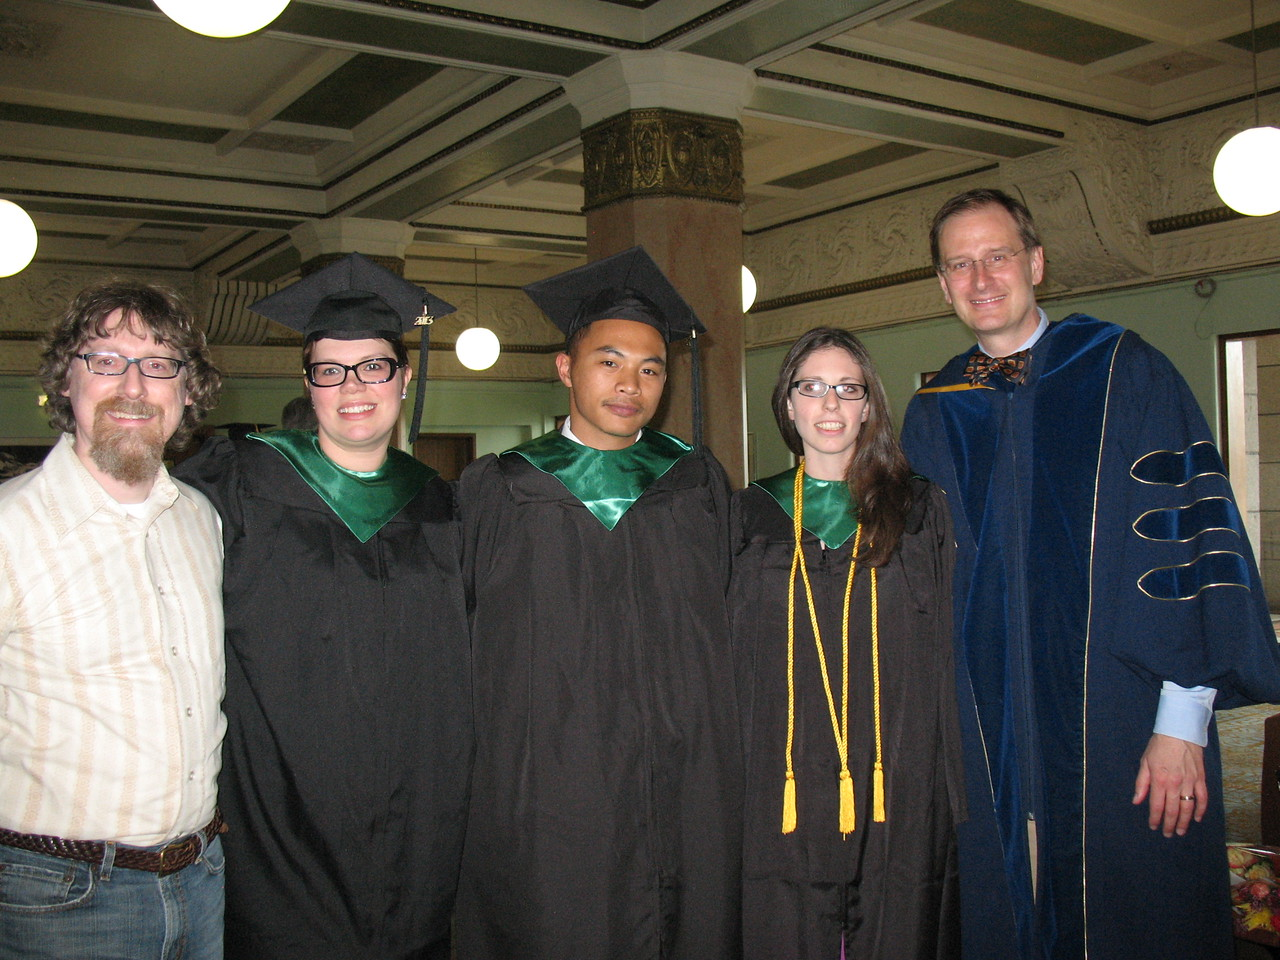 L to R: Prof. Mike Bryson, Angi Cornelius, Mike Magdongon, Stephanie Eisner, and Prof. Brad Hunt